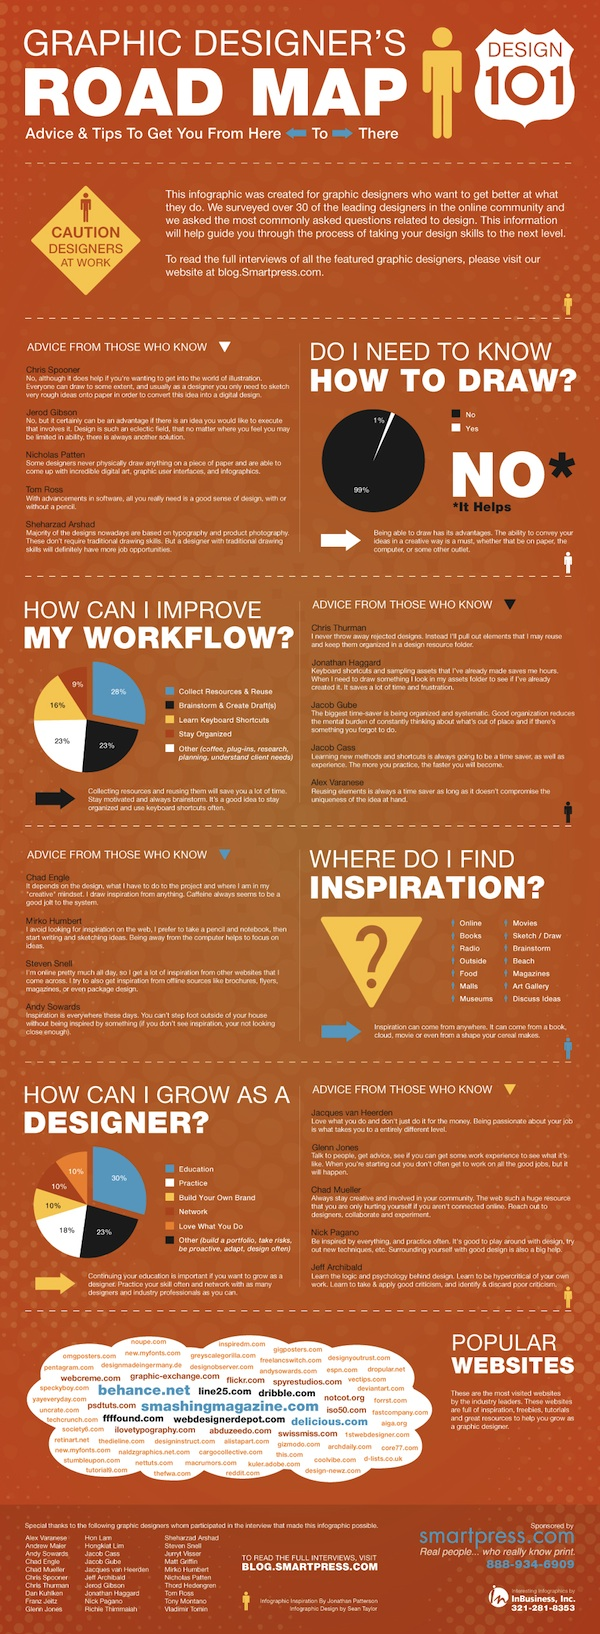 Graphic Designer's Road Map